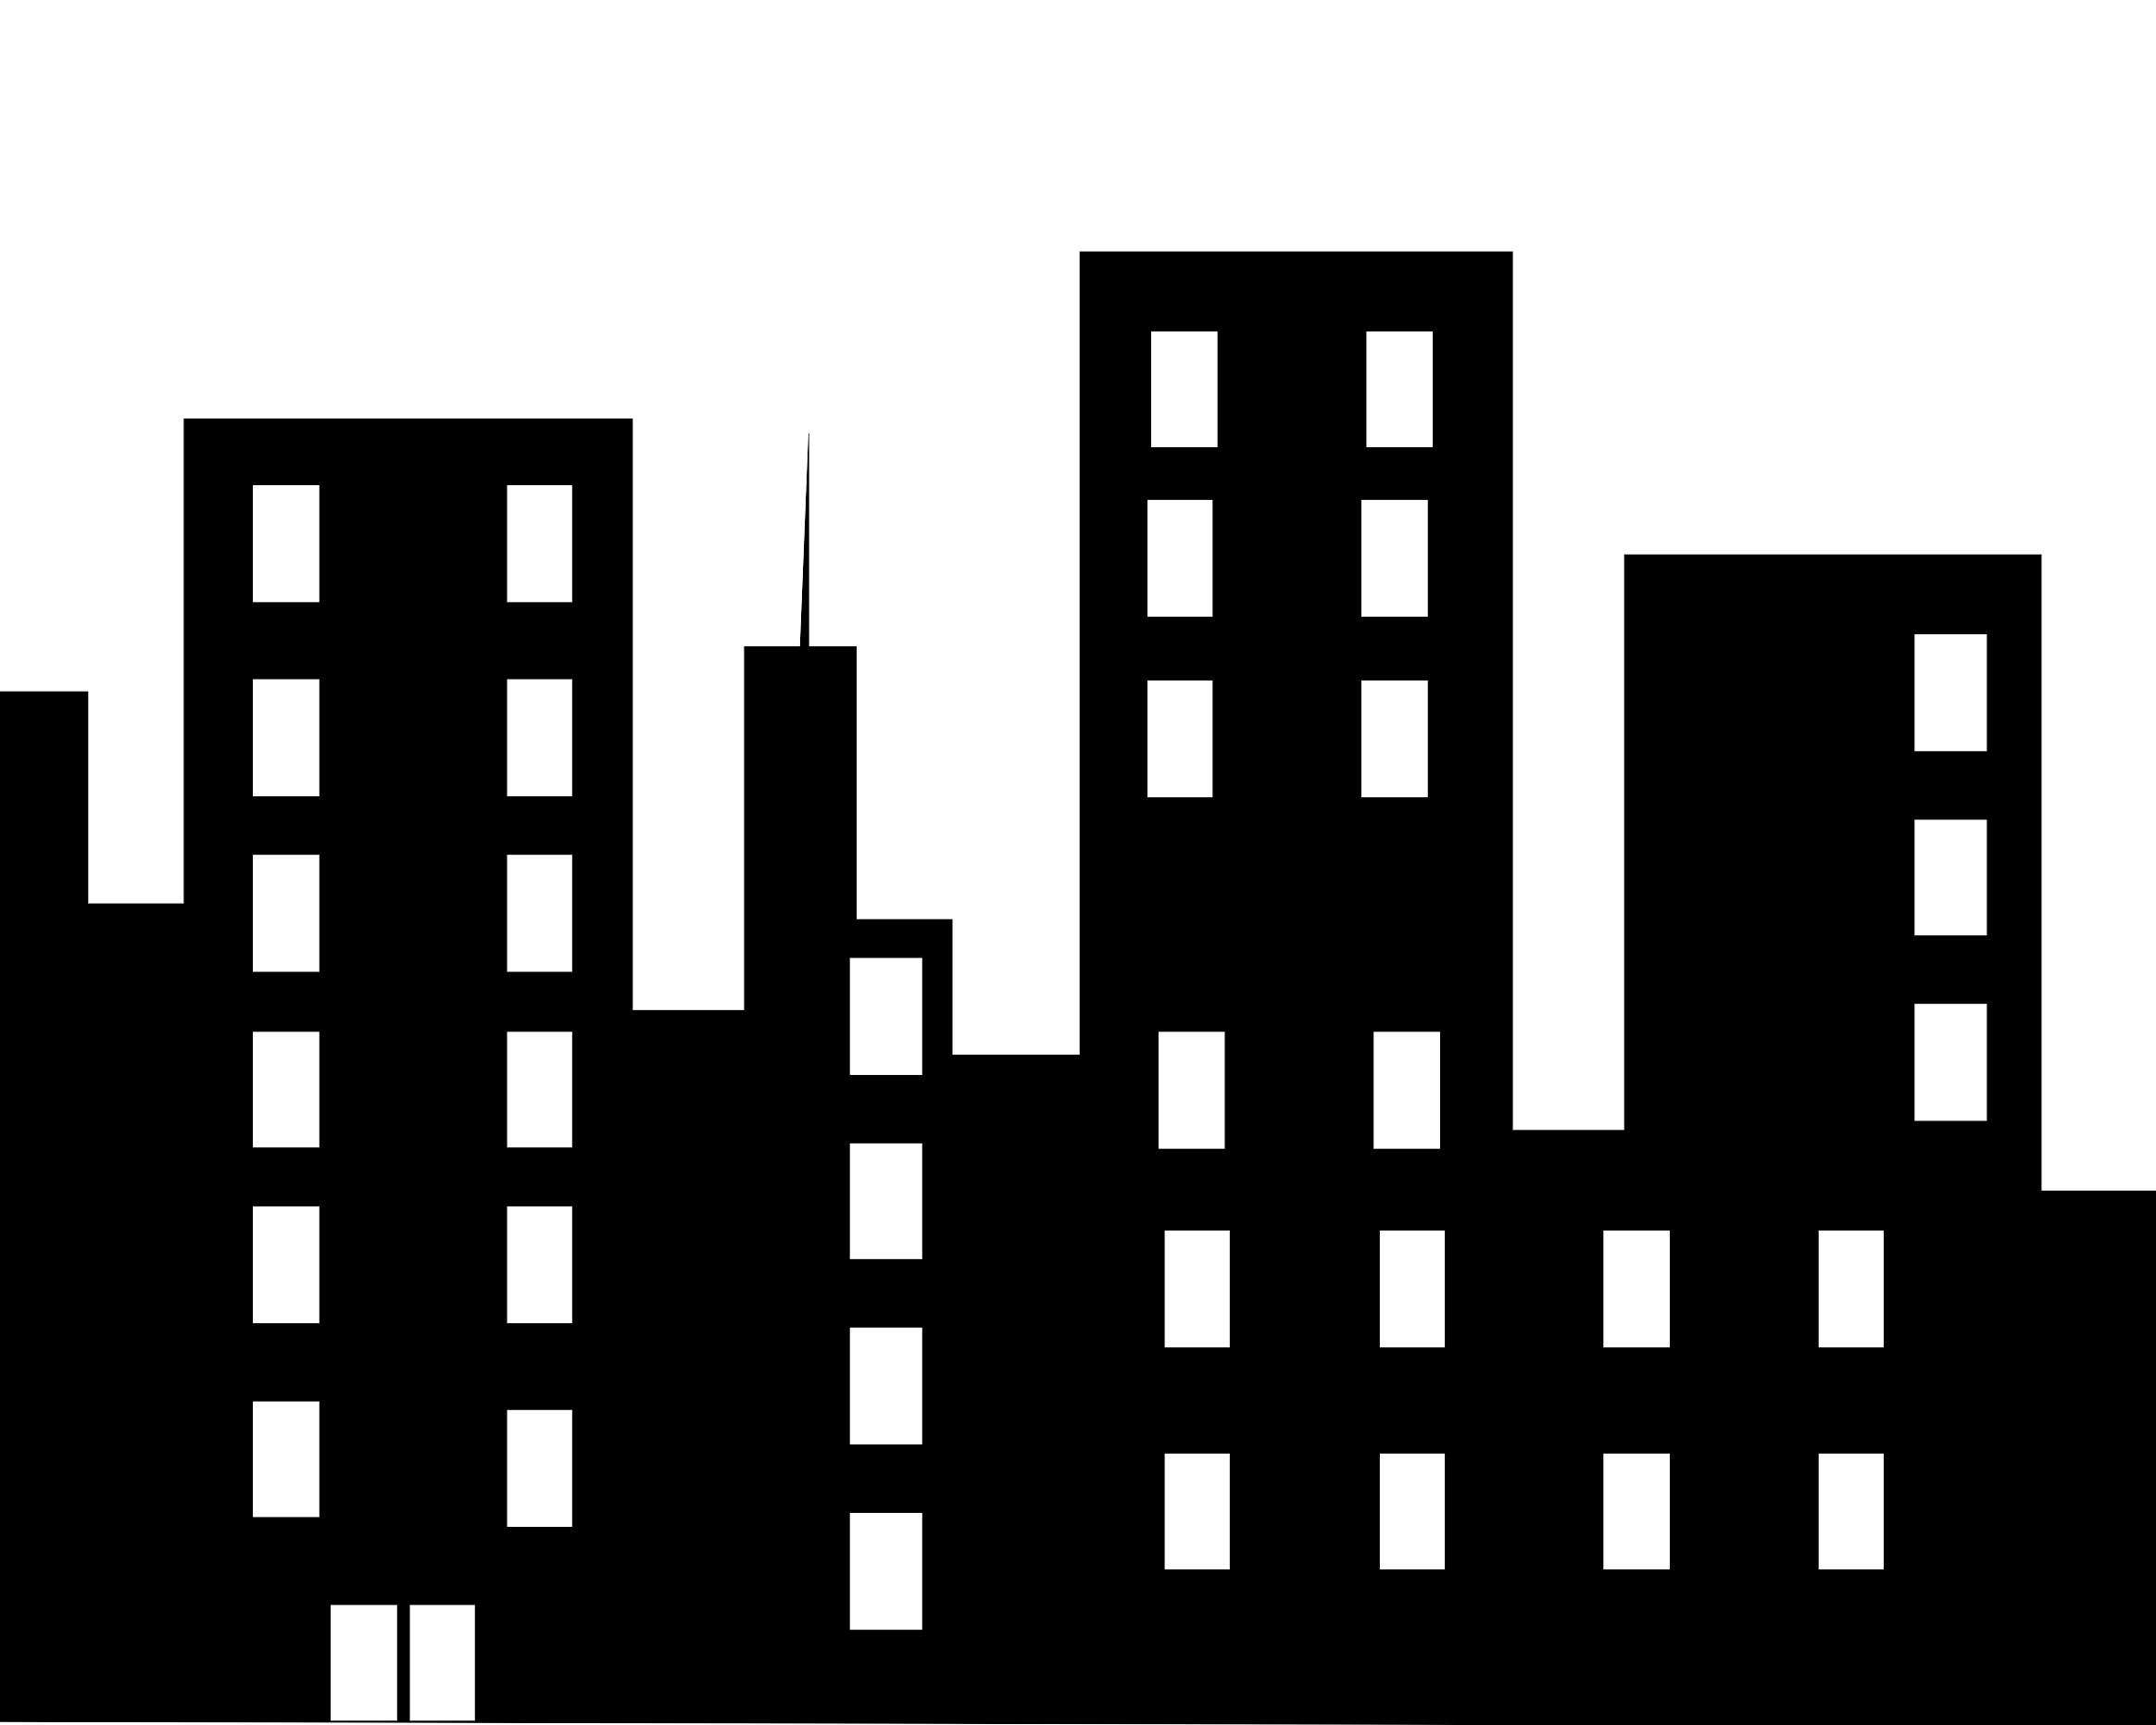 City building clipart black and white png.